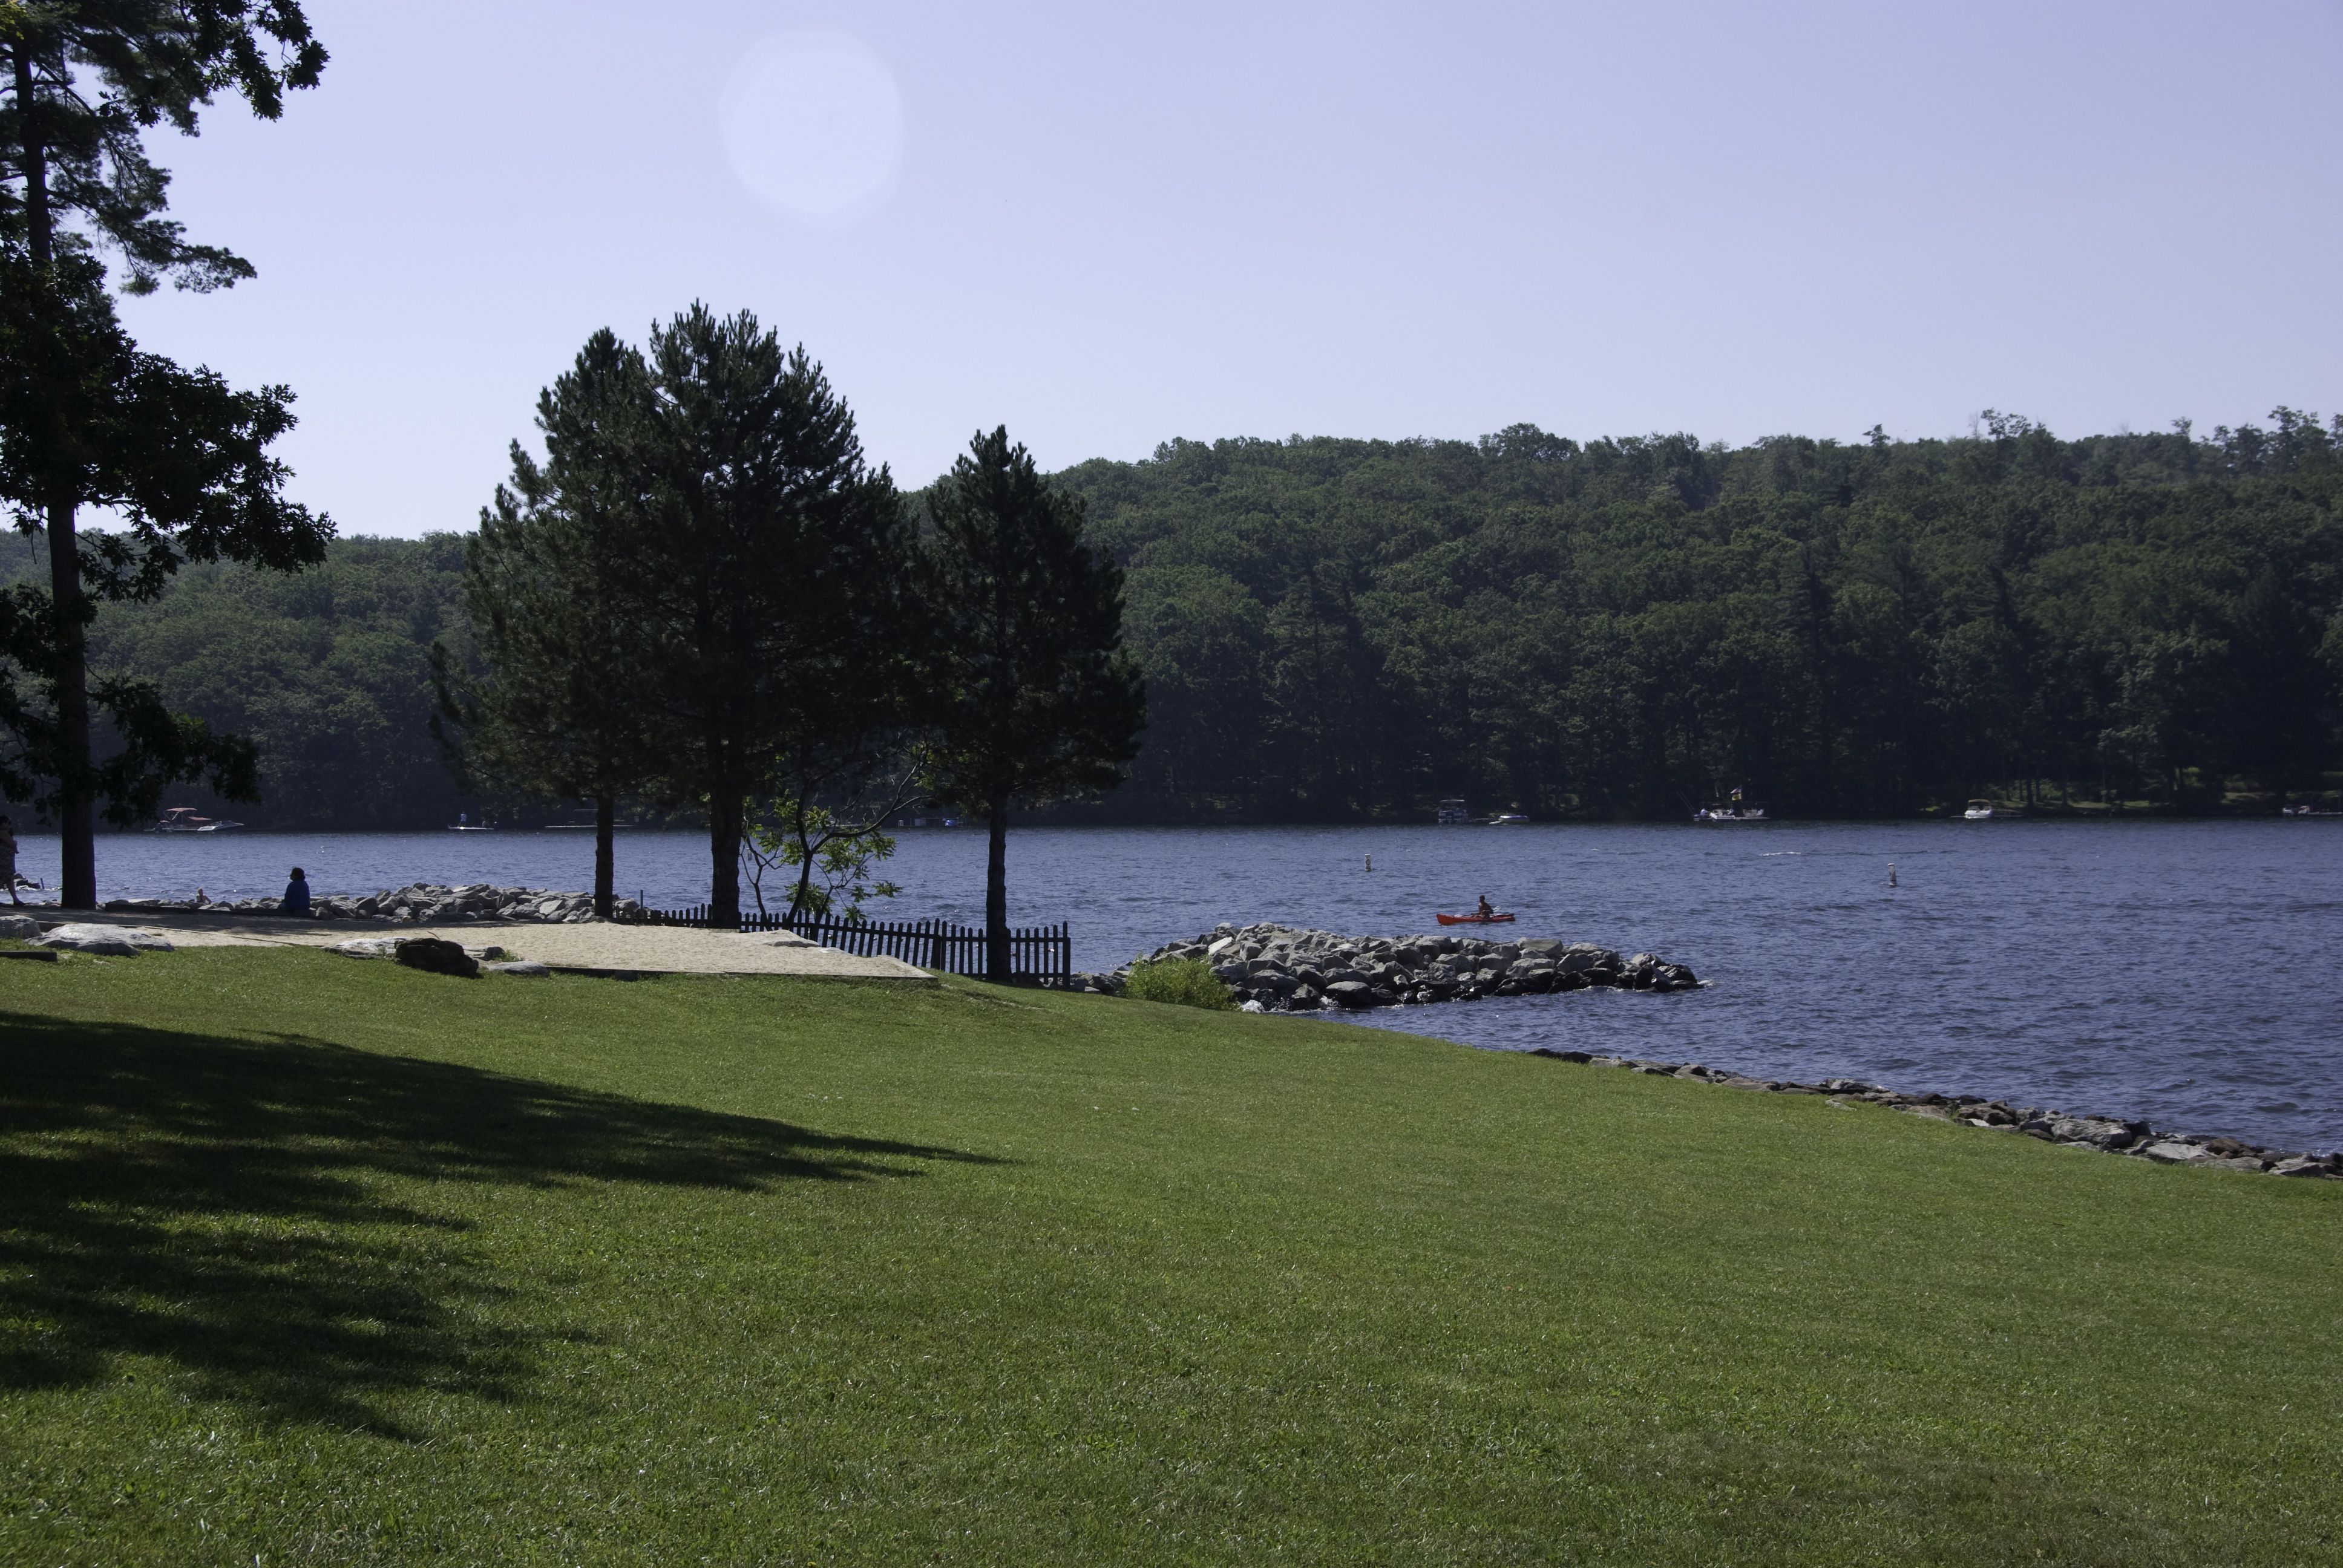 Grassy shore of Deep Creek Lake lined with trees and rocks